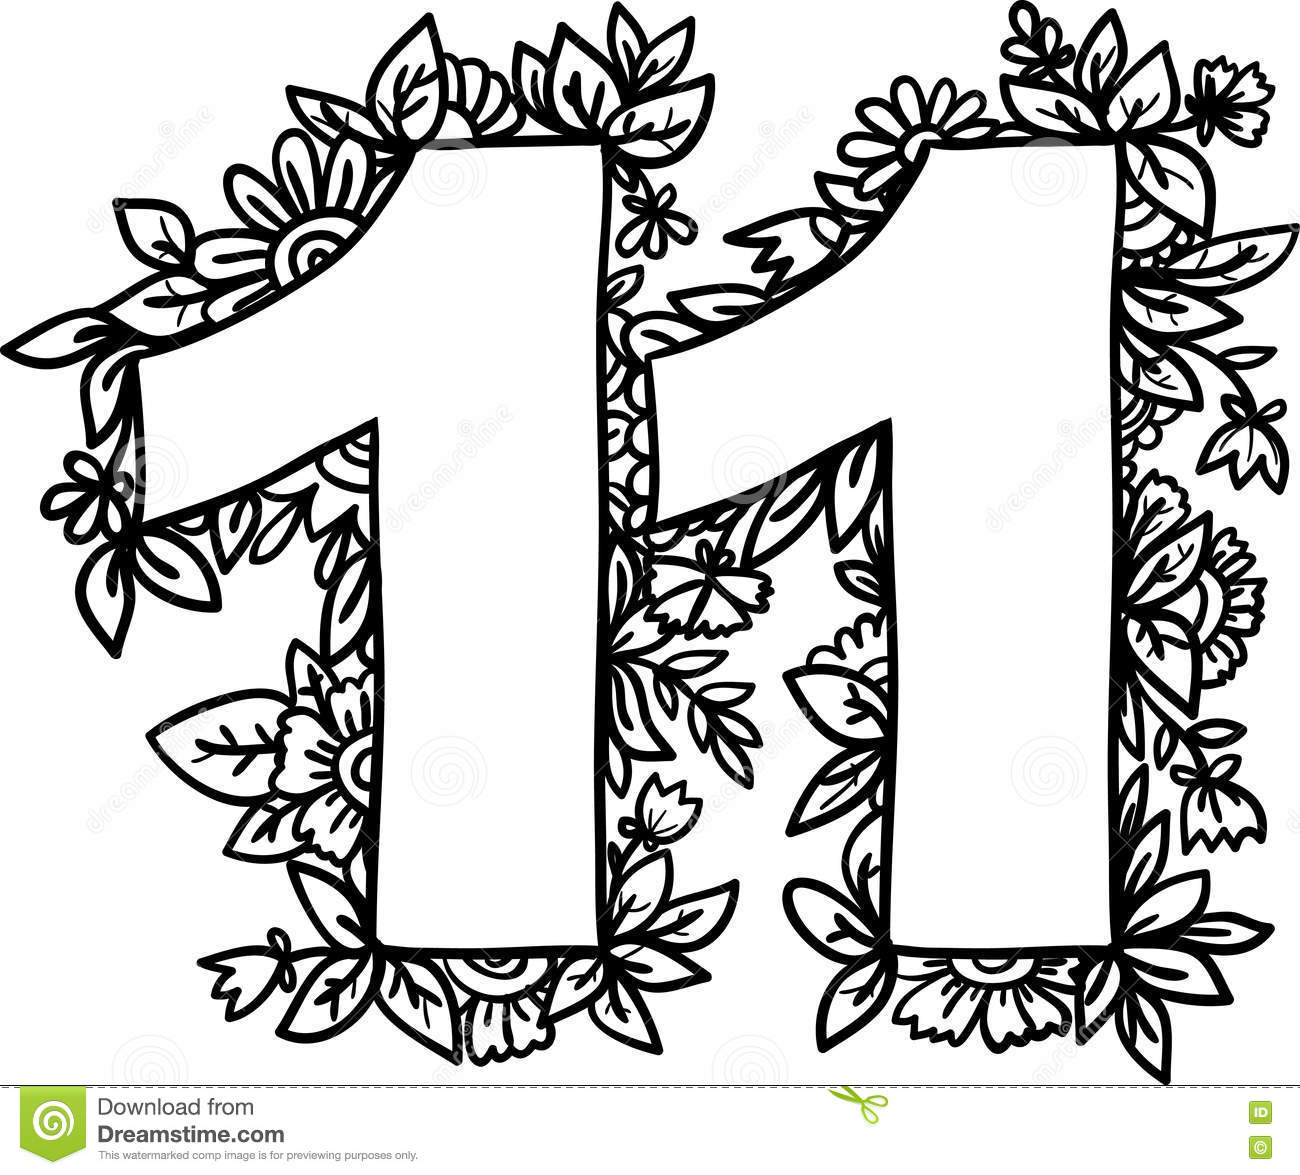 Number 11 with decorative floral and herbal elements. Vector illustration.